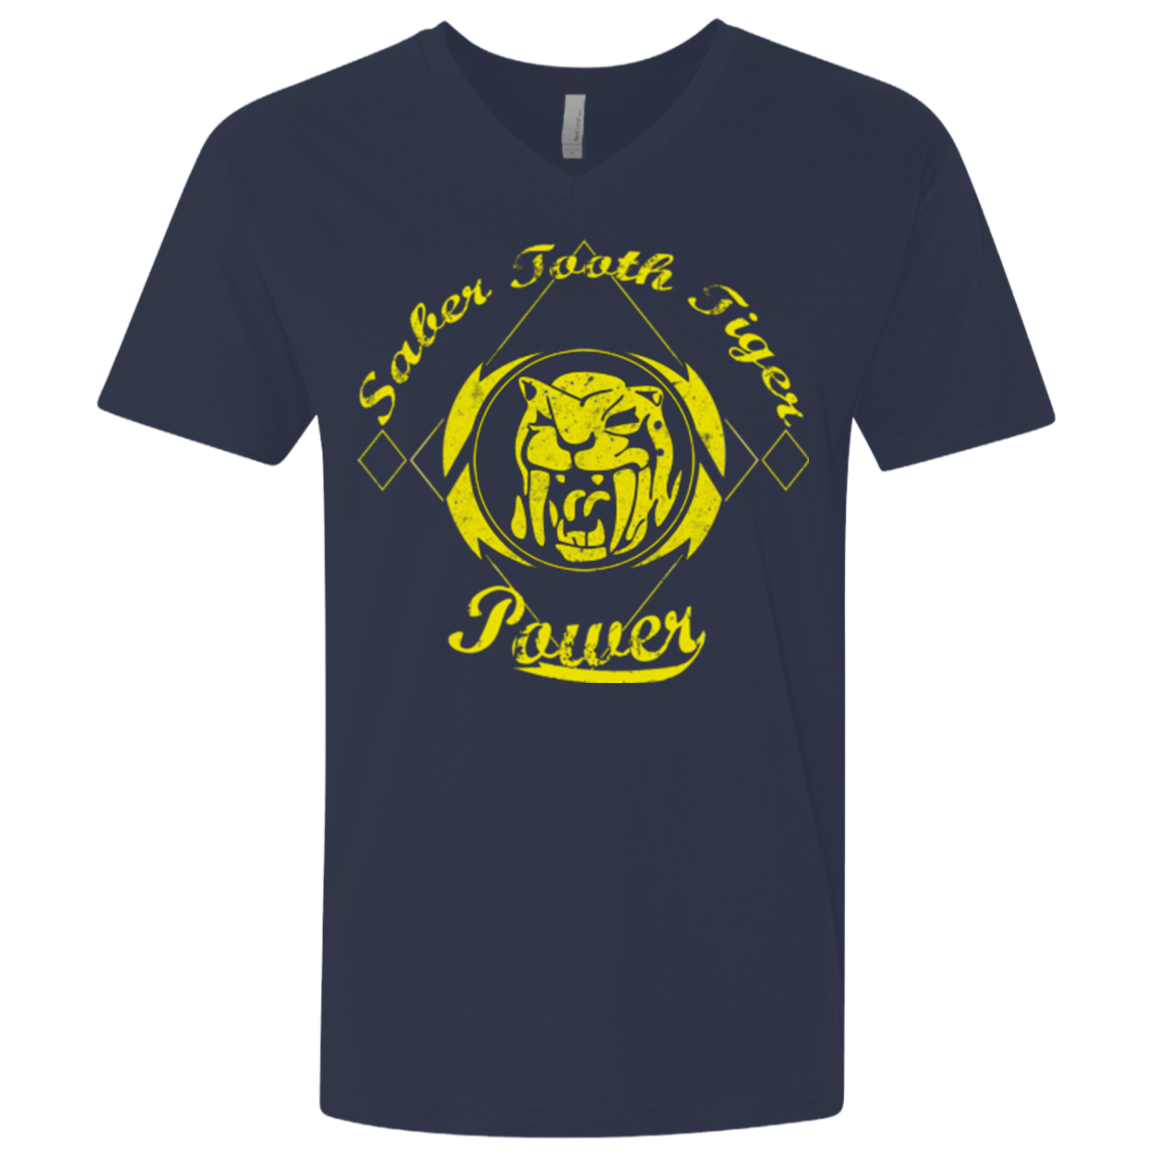 Saber Tooth Tiger (1) Men's Premium V-Neck